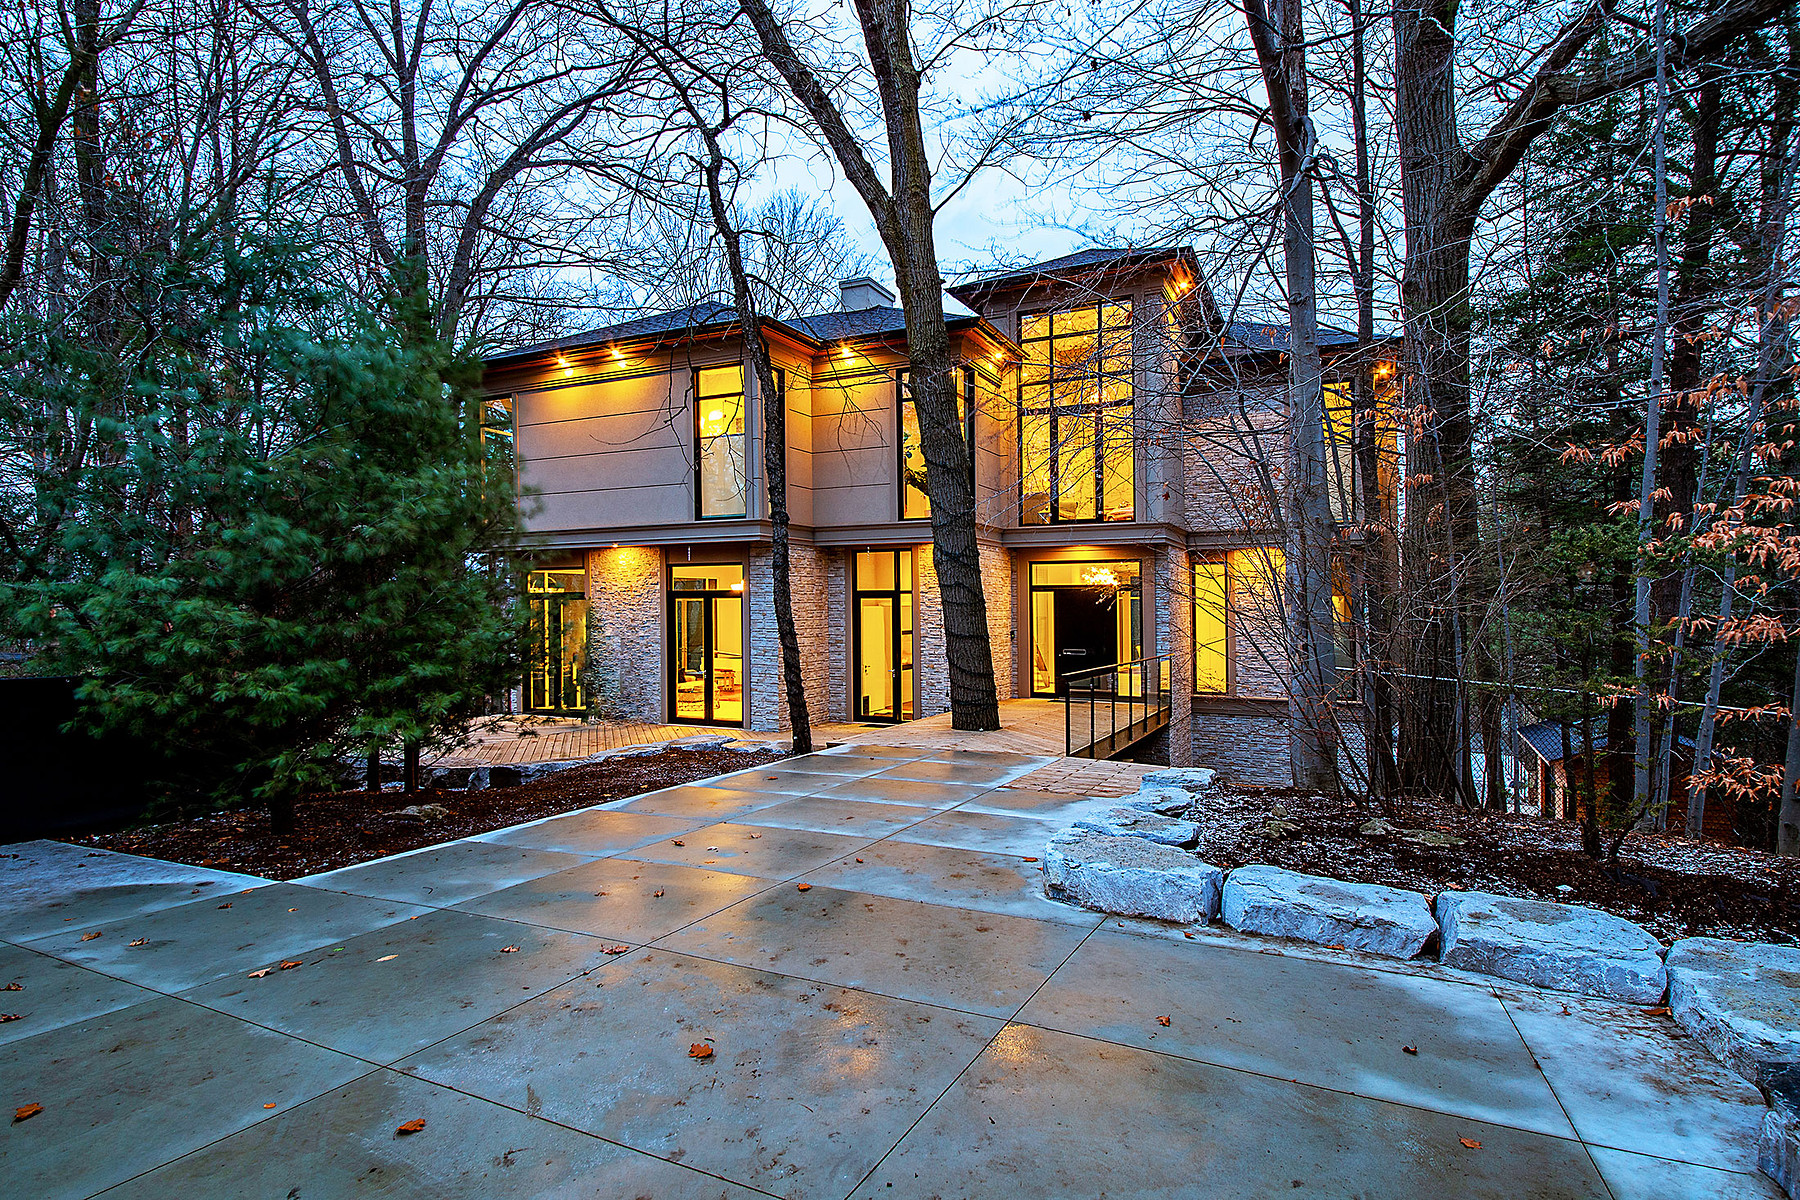 Single Family Home for Sale at Inspired Contemporary Estate 18A Westmount Park Rd Toronto, Ontario M9P 1R5 Canada